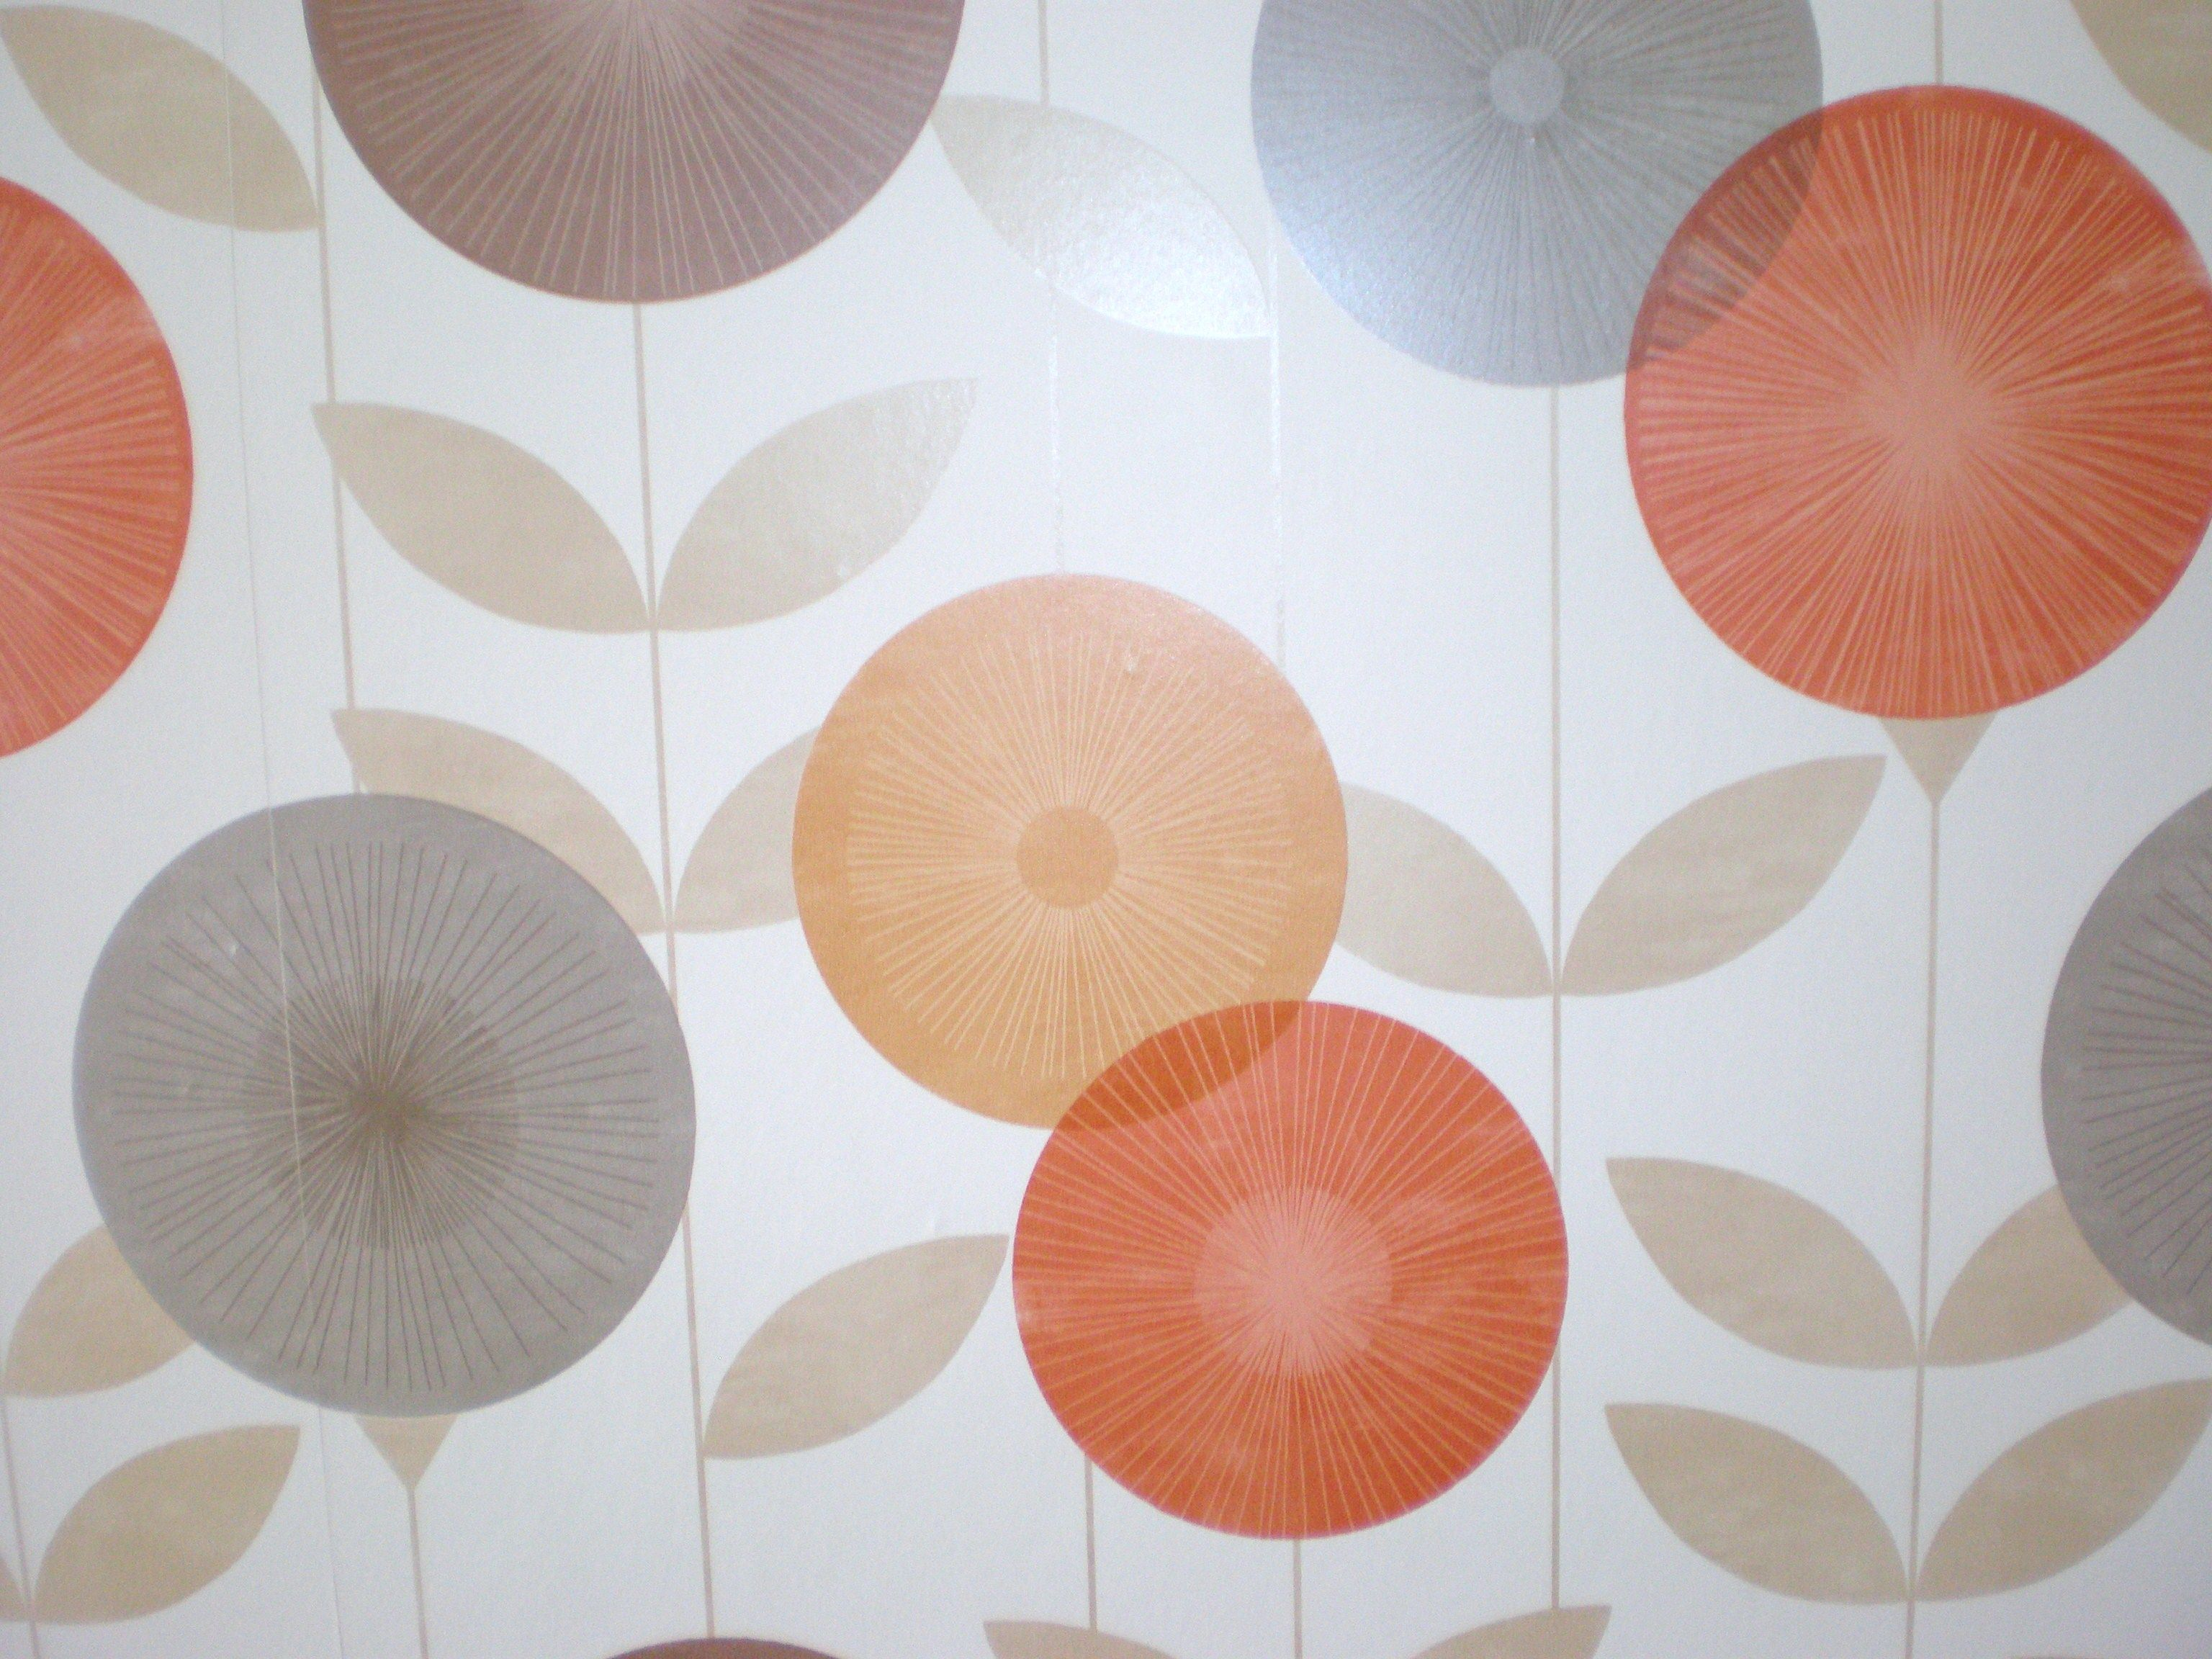 Retro Wallpaper that reminds me of my 'spirograph' days!